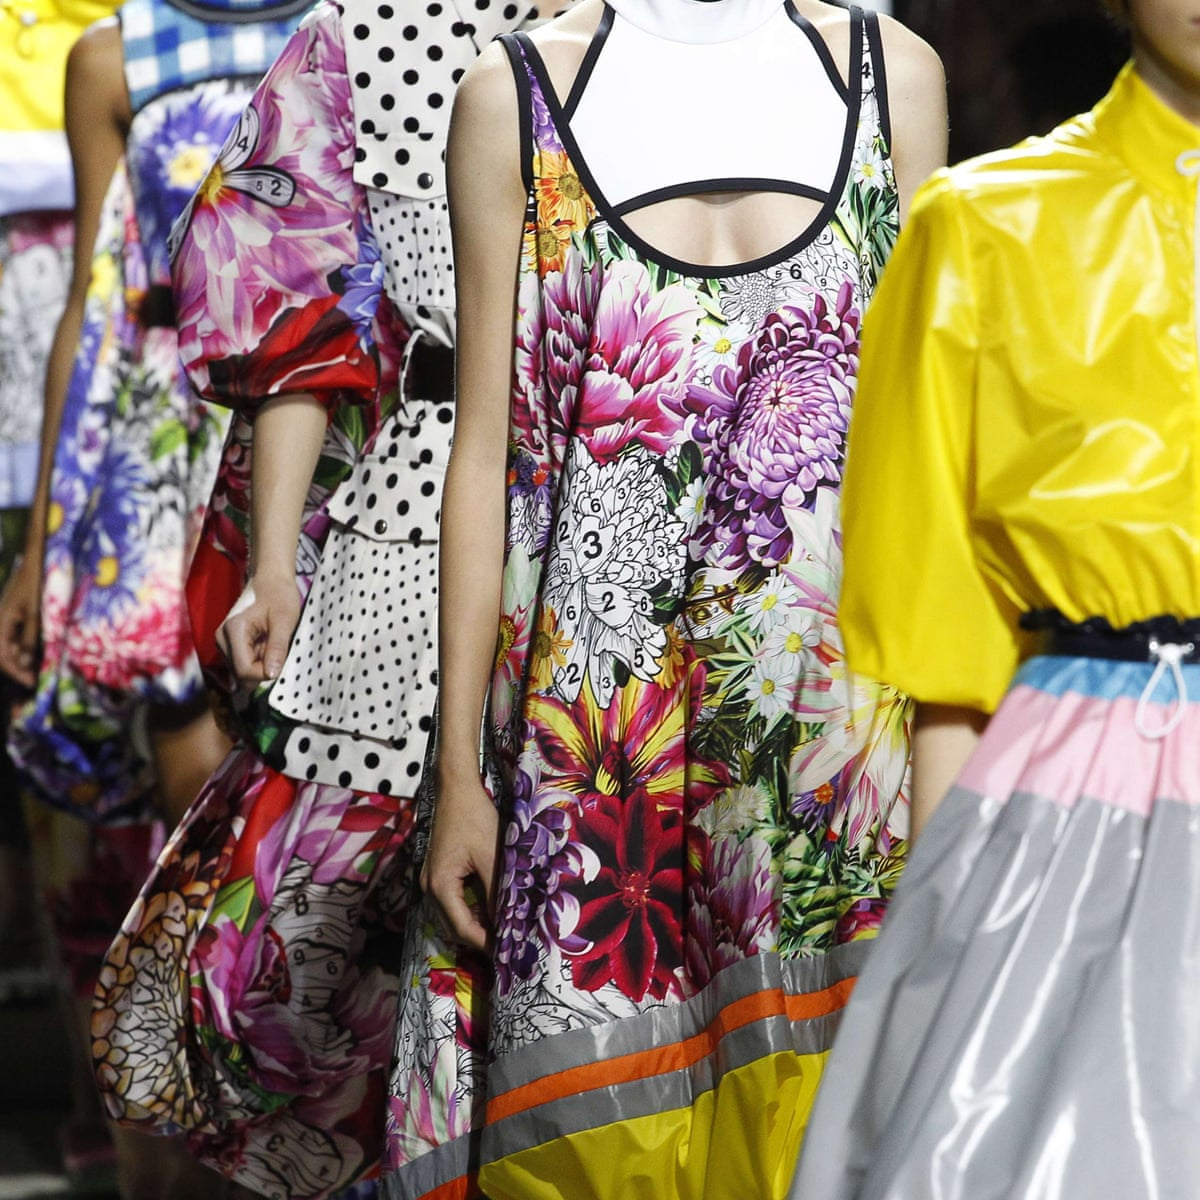 Mary Katrantzou I M One Of Those Designers Who Only Ever Wears Black Fashion The Guardian